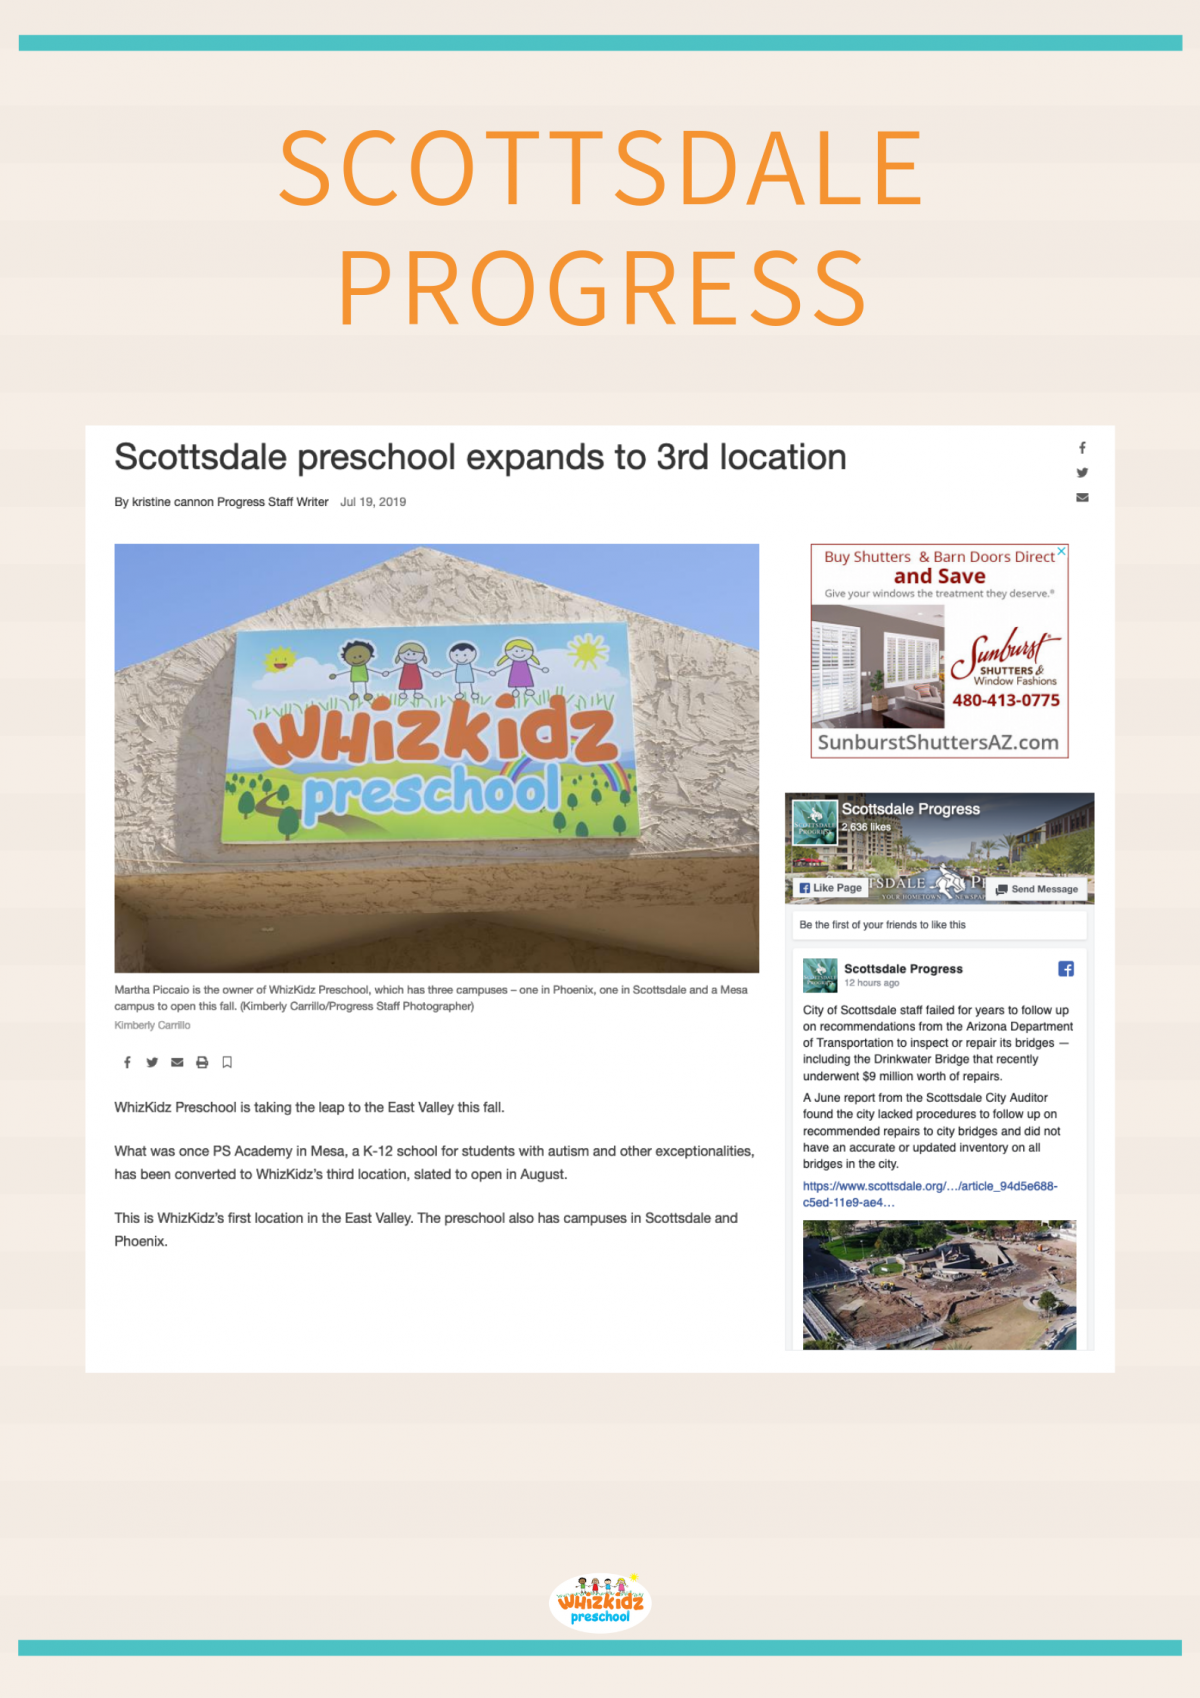 Scottsdale preschool expands to 3rd location